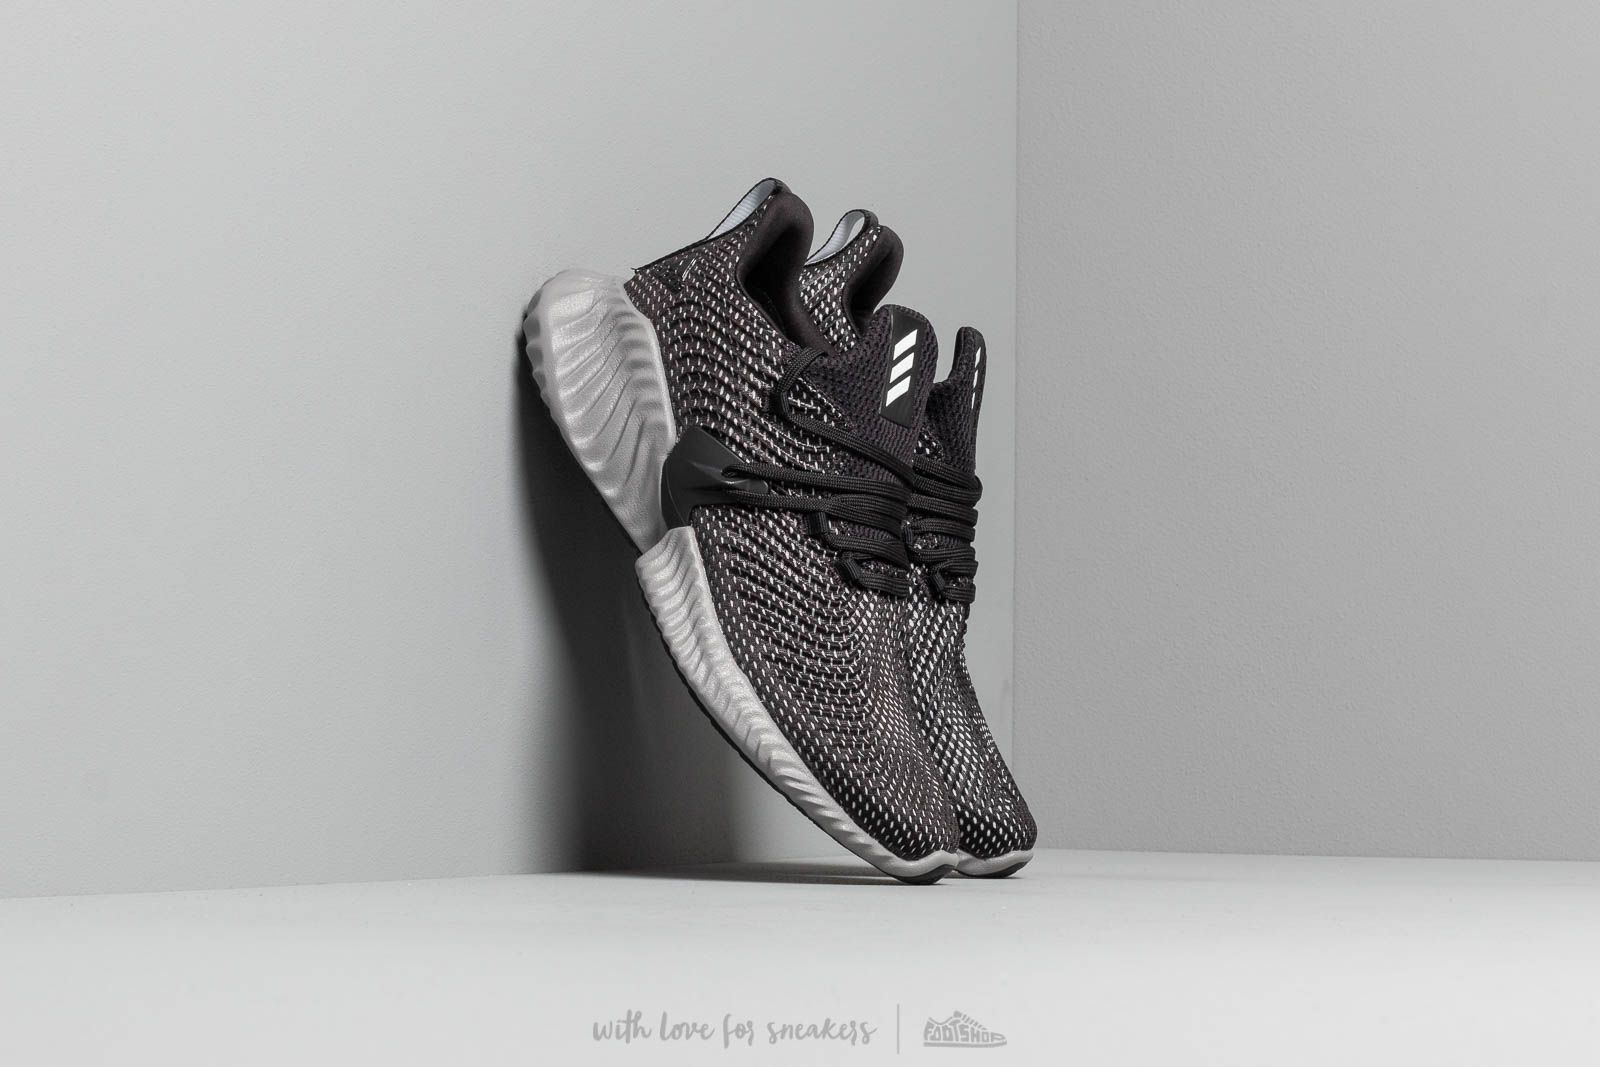 7af85c8fc288c adidas Alphabounce Instinct M Core Black  Ftw White  Grethr at a great  price 106